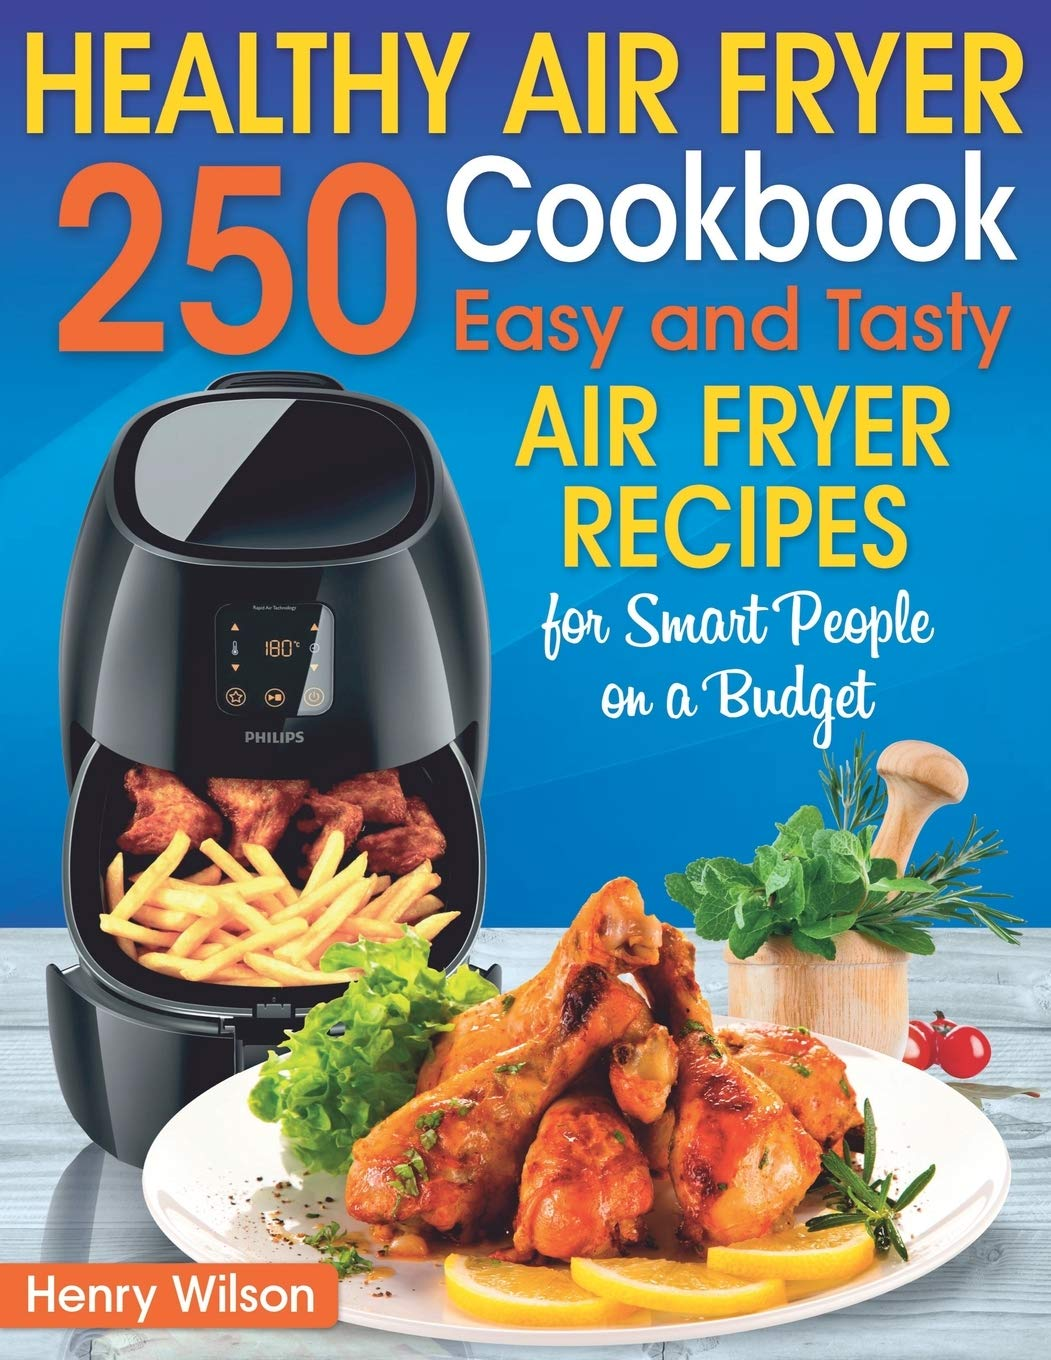 Healthy Air Fryer Cookbook 250 Easy And Tasty Air Fryer Recipes